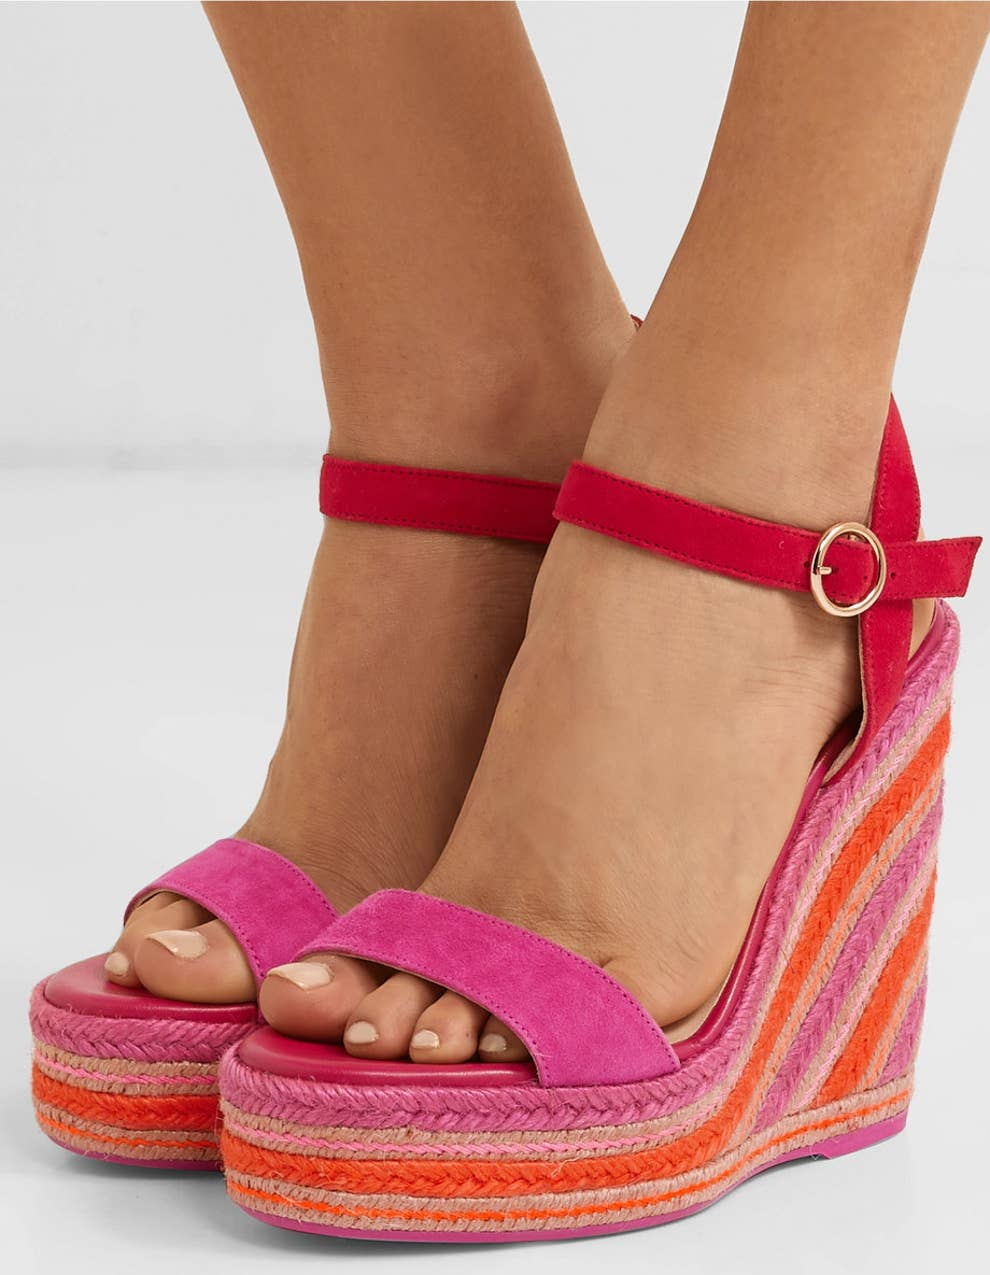 6fa55d72700 99 Of The Best Sandals You Can Get Online